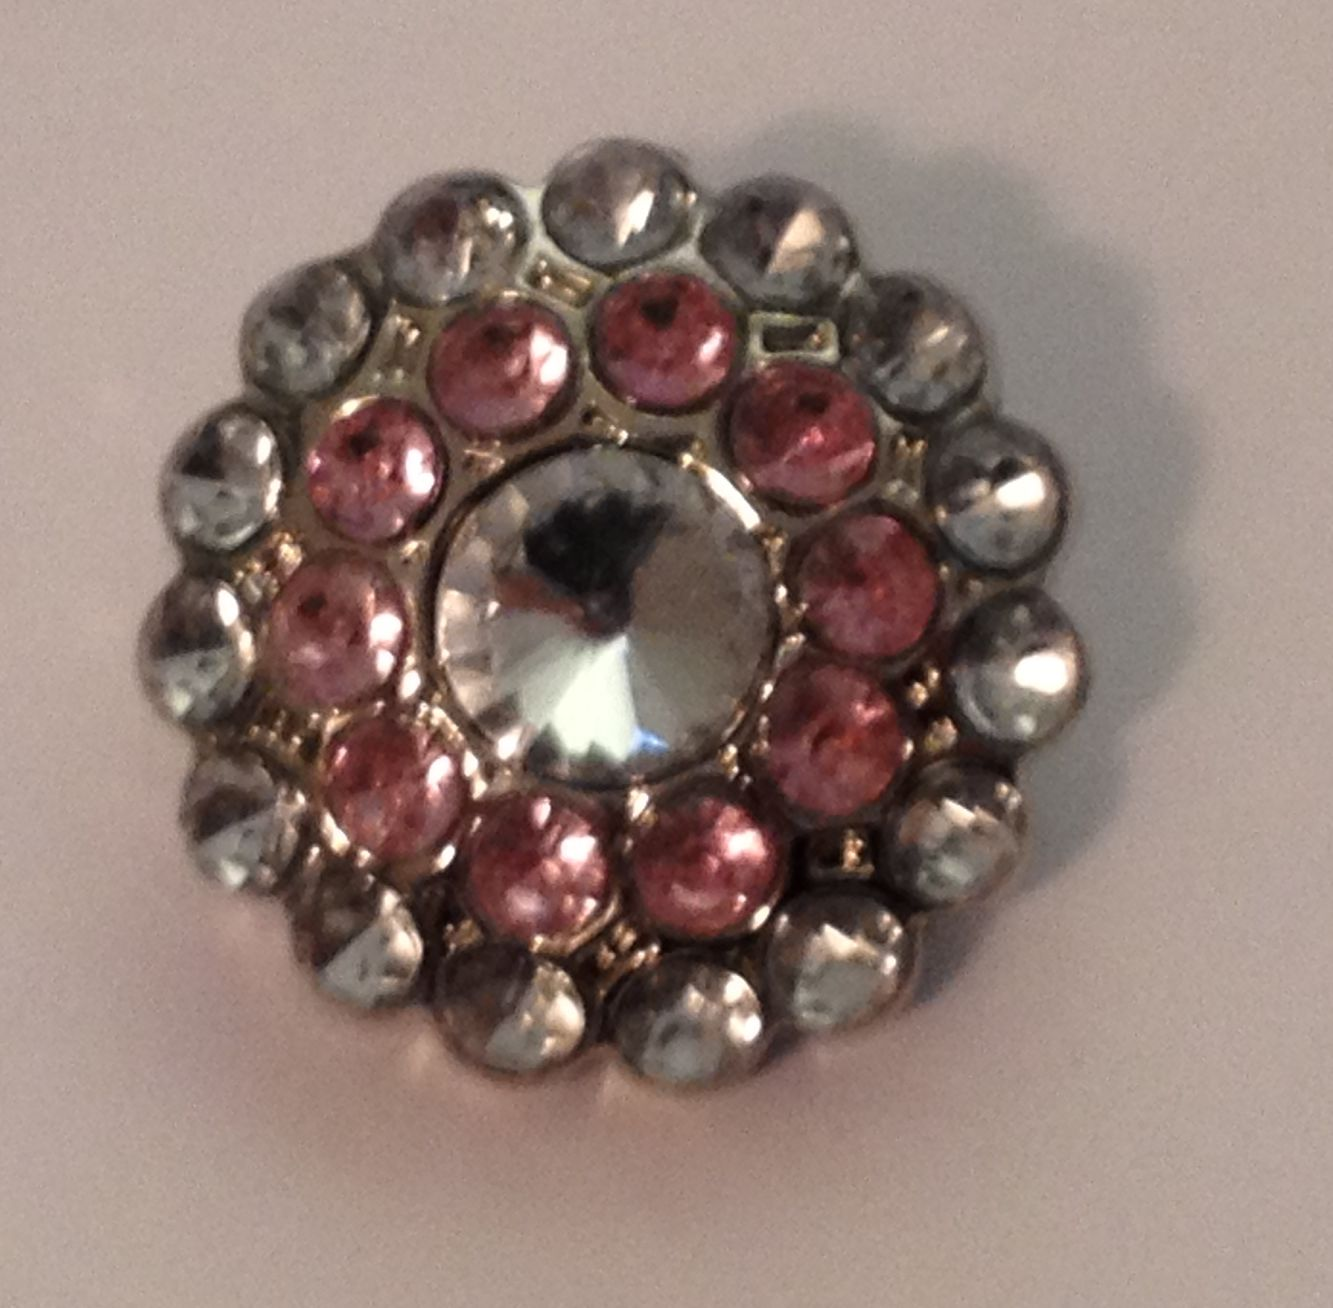 Cluster Blingy Button - Pink and Clear - 1 piece